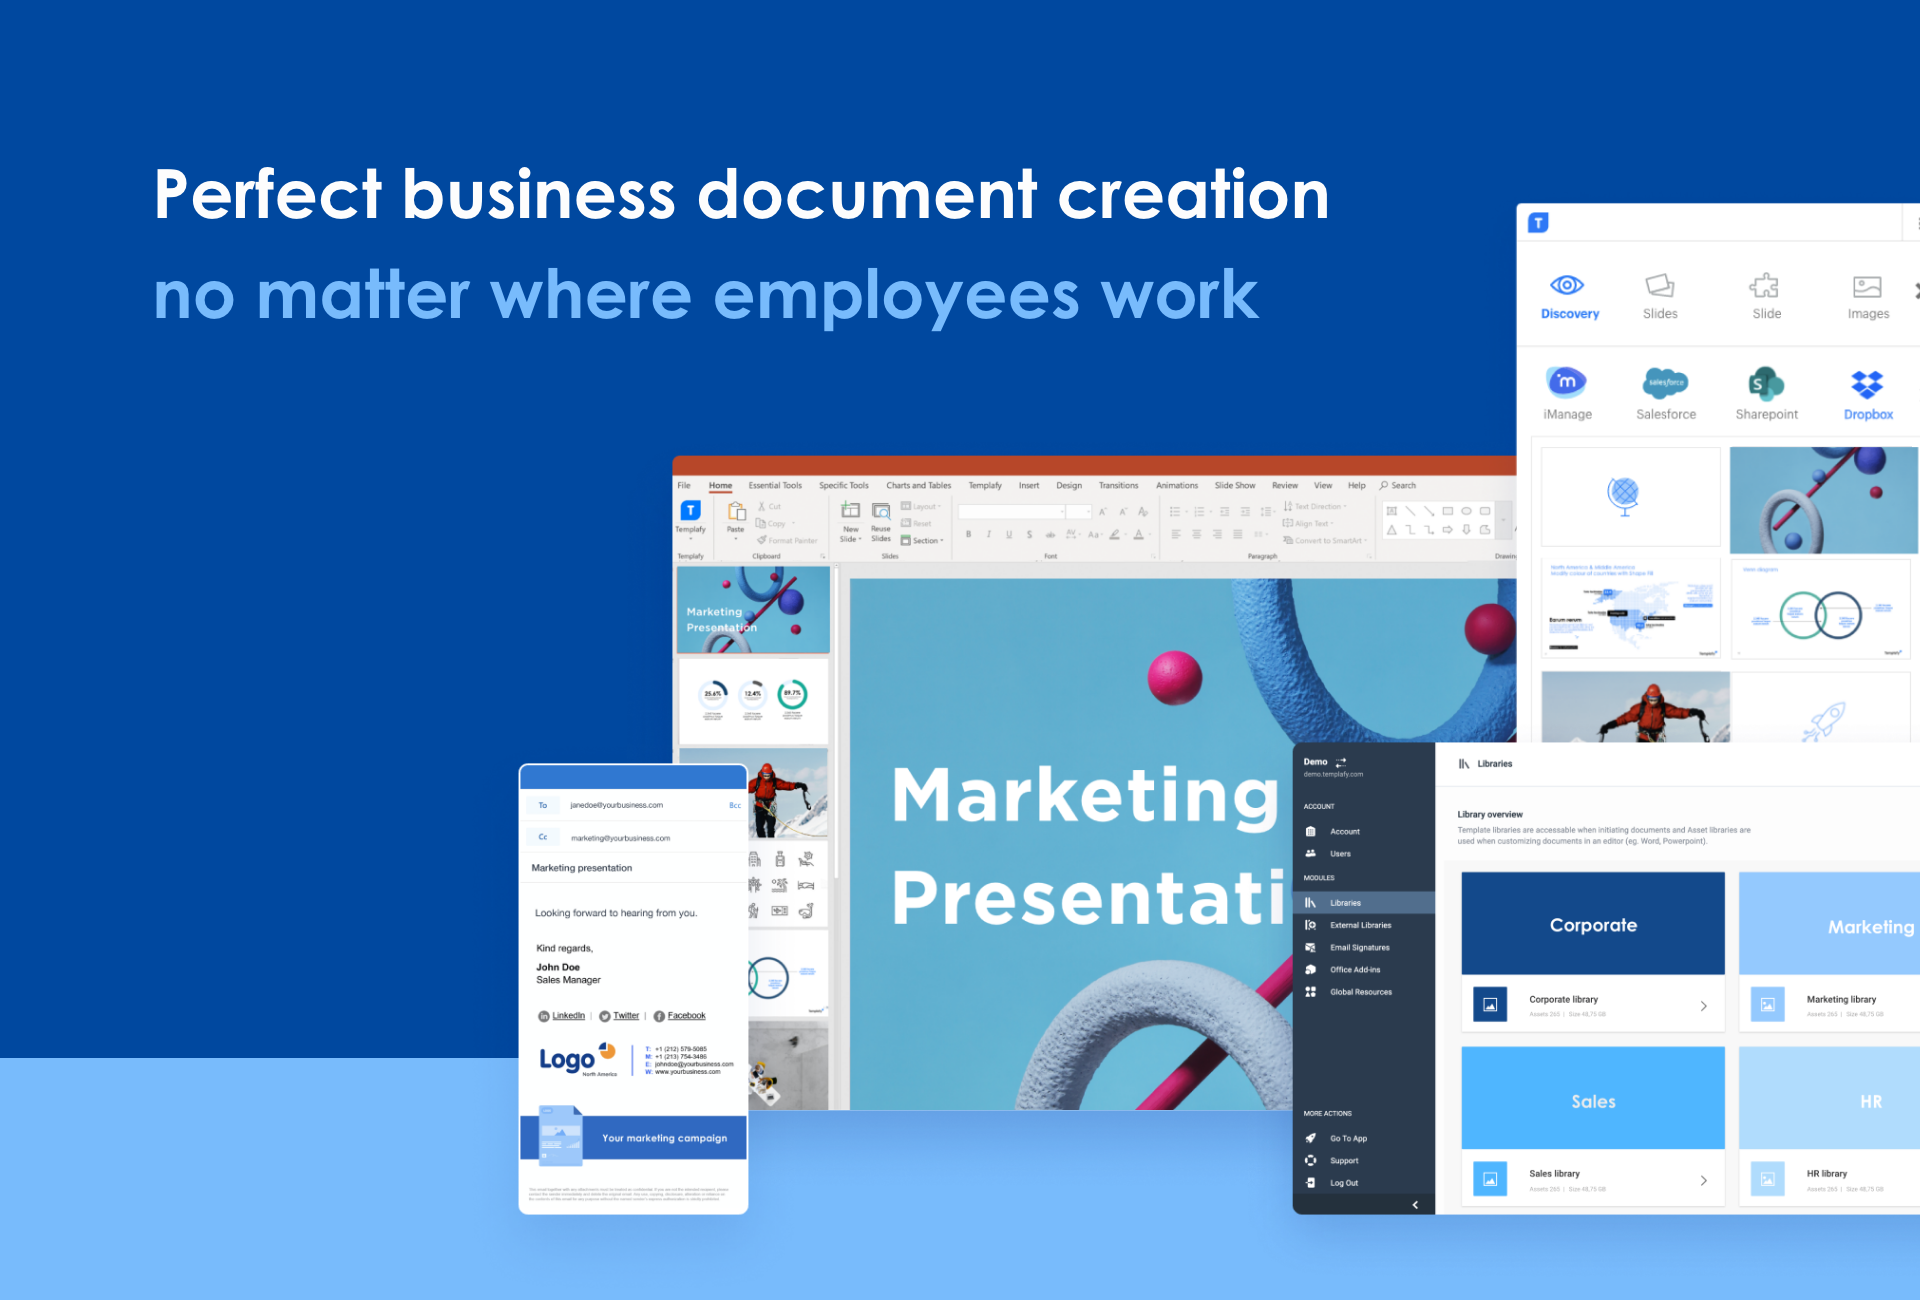 Templafy screenshot: Templafy supports millions of employees worldwide to create documents faster and within company standards through anywhere-access to all content.